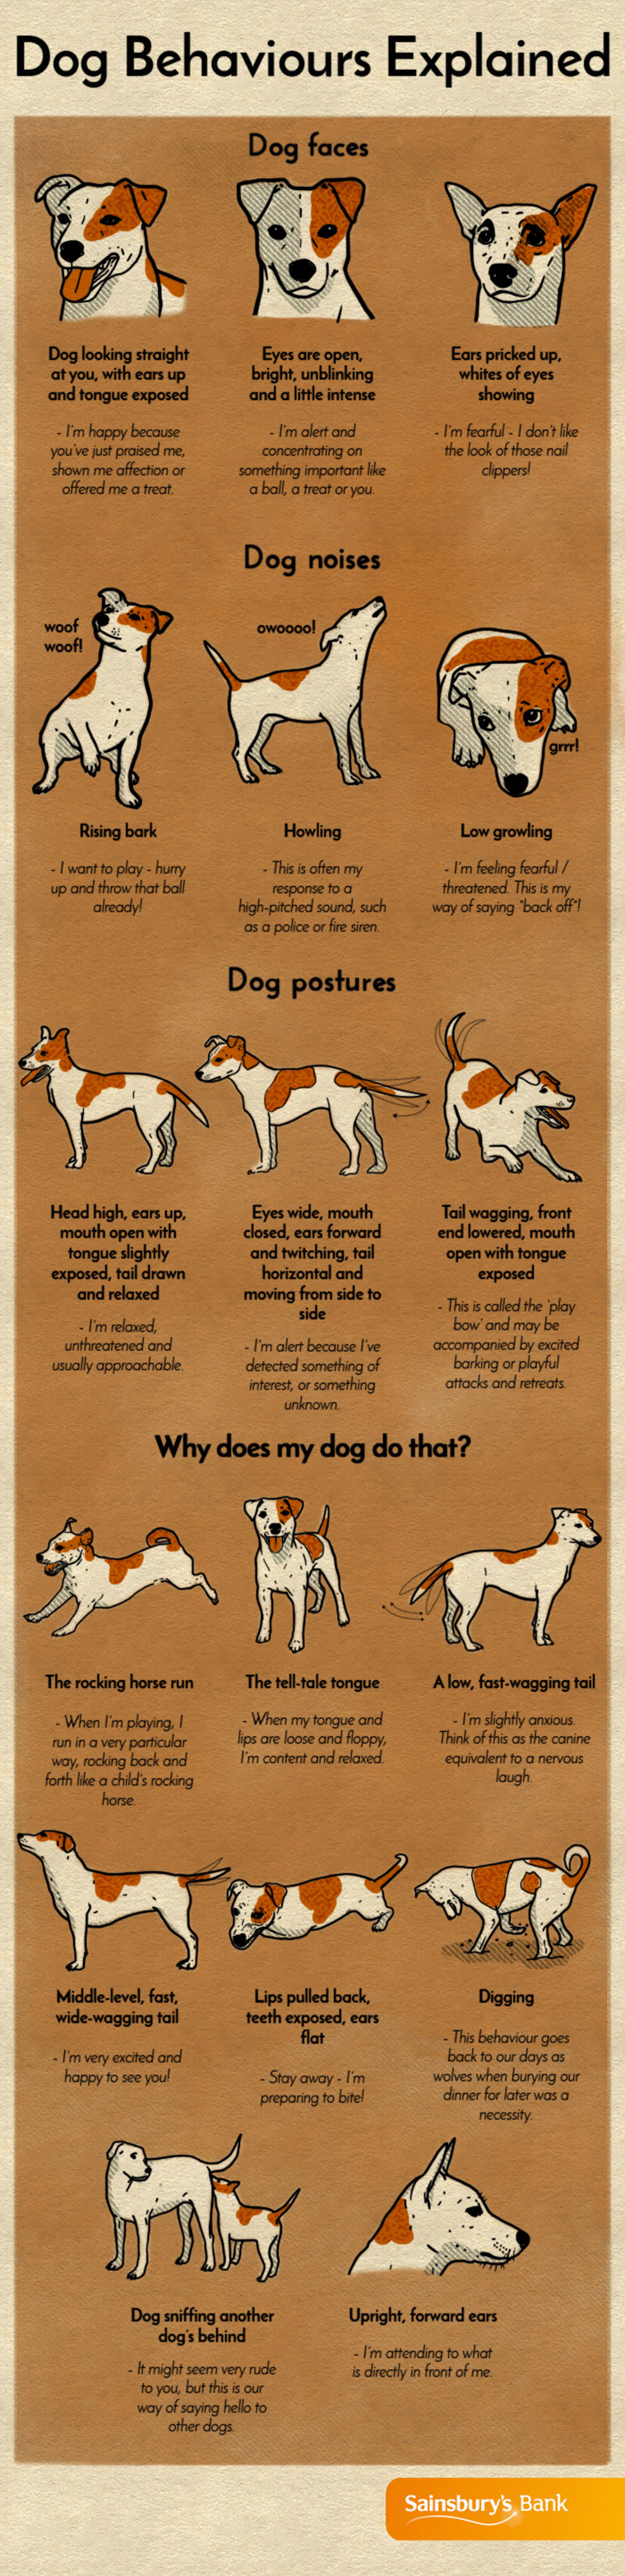 Dog Behaviors